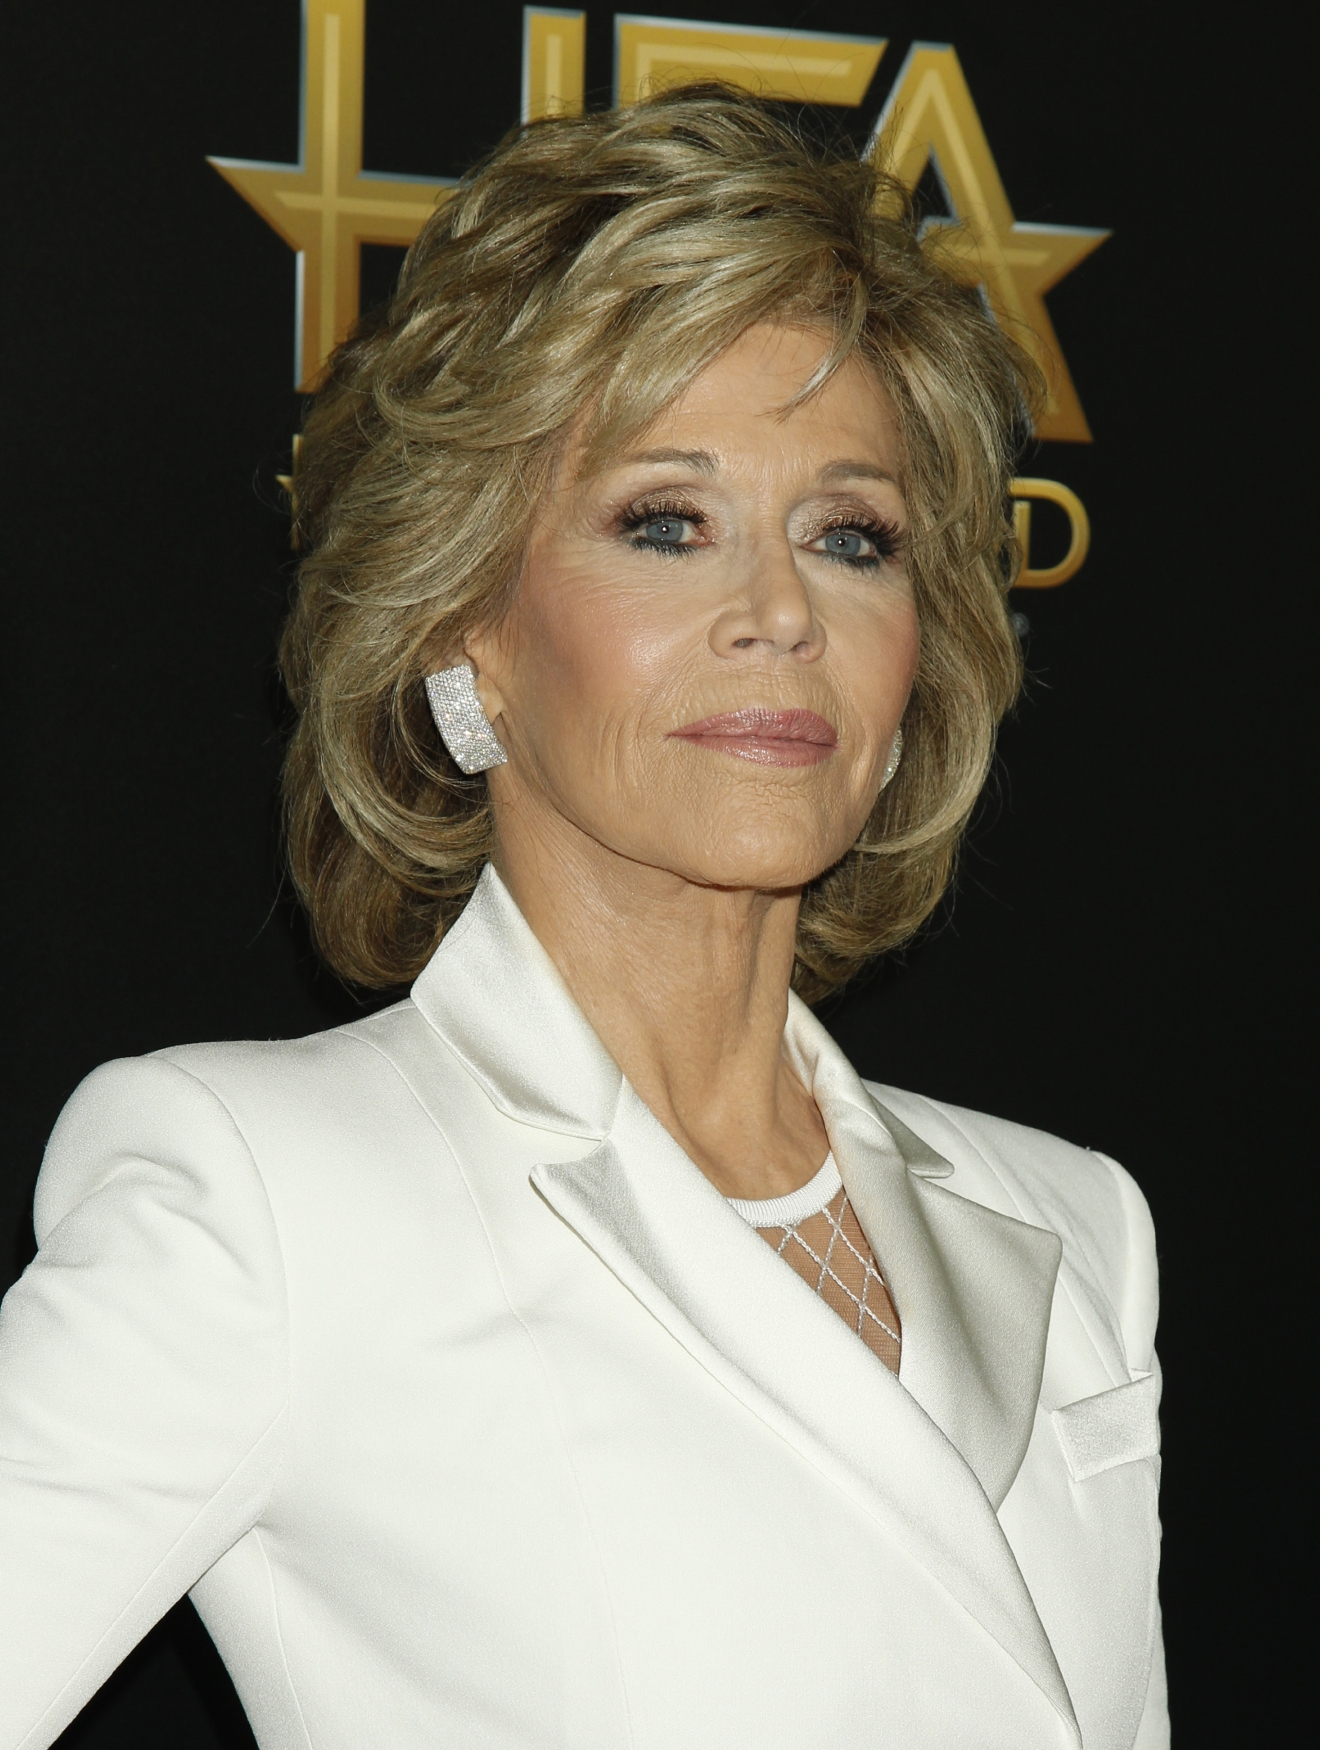 19th Annual Hollywood Film Awards                                    Featuring: Jane Fonda                  Where: Beverly Hills, California, United States                  When: 02 Nov 2015                  Credit: FayesVision/WENN.com